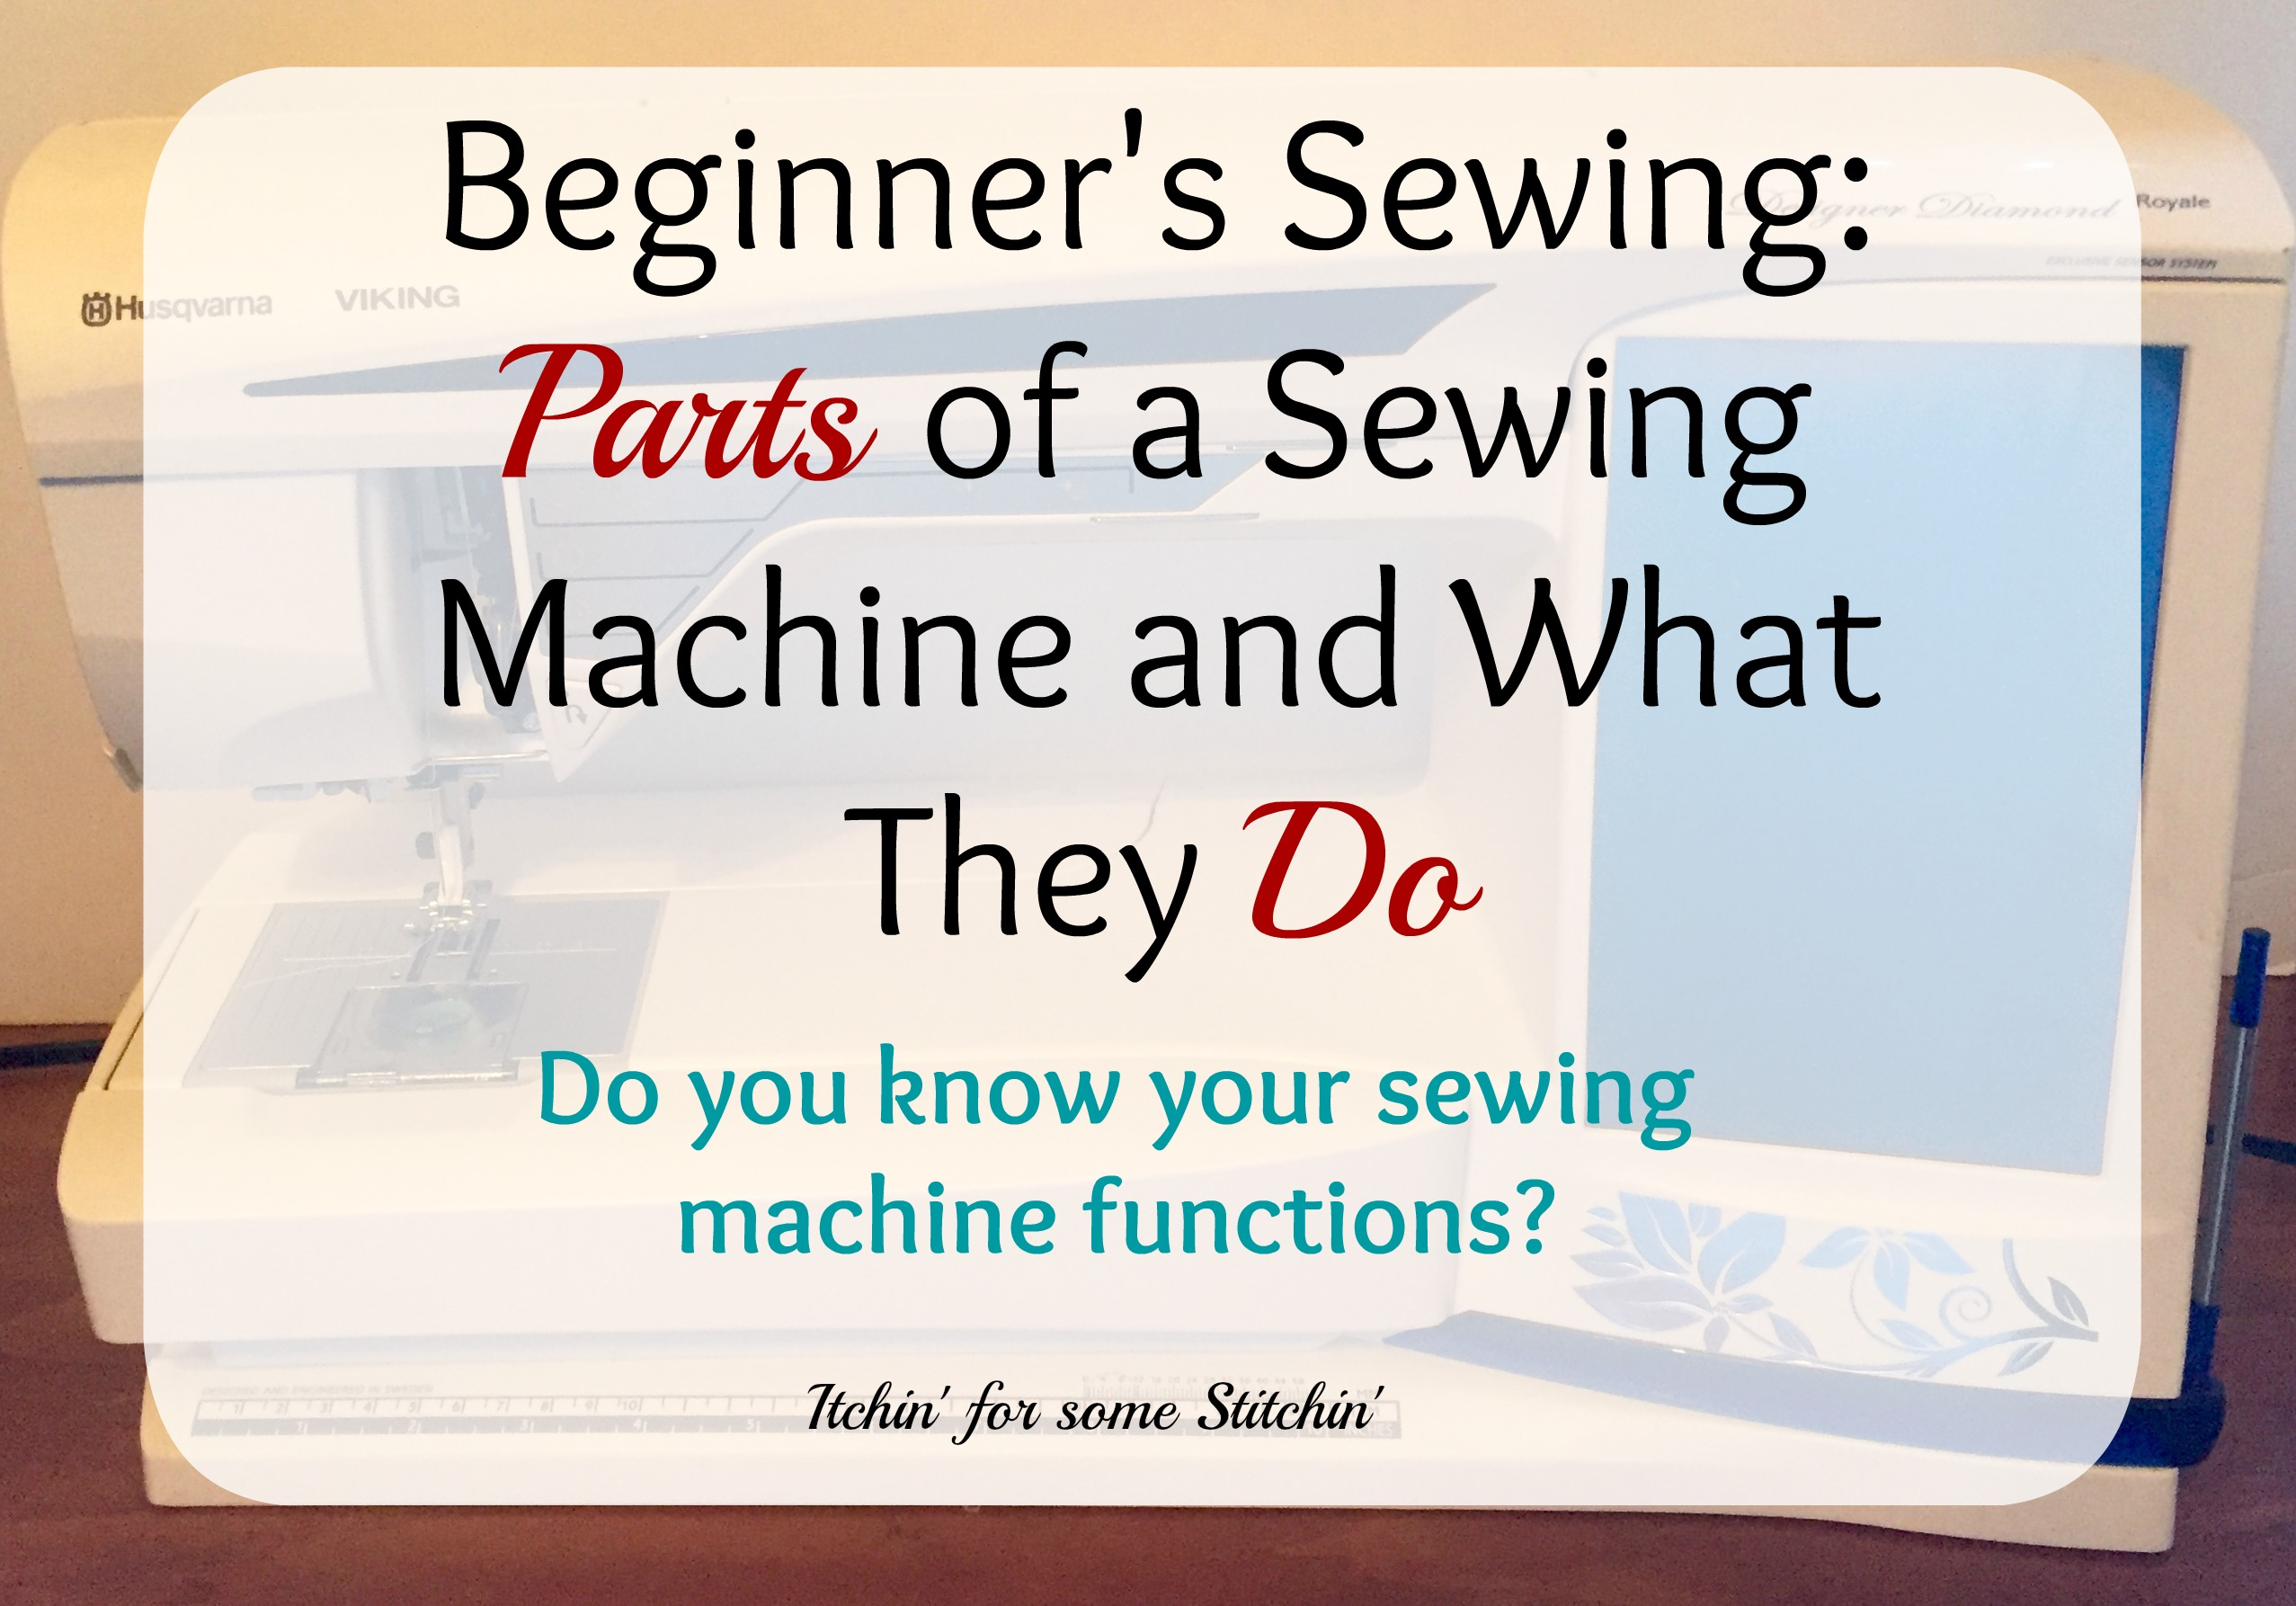 Getting To Know Your Sewing Machine Parts And Their Functions Thread A Diagram Labeled Itchin For Some Stitchin